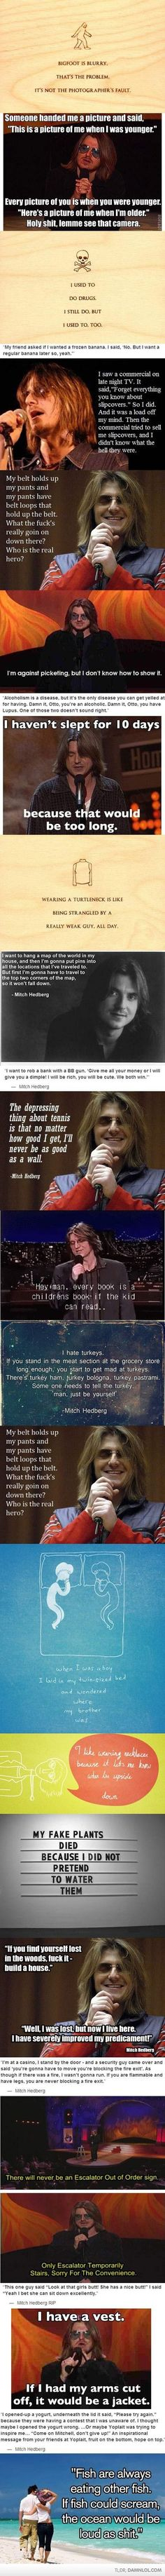 Awesome Mitch Hedberg Quotes